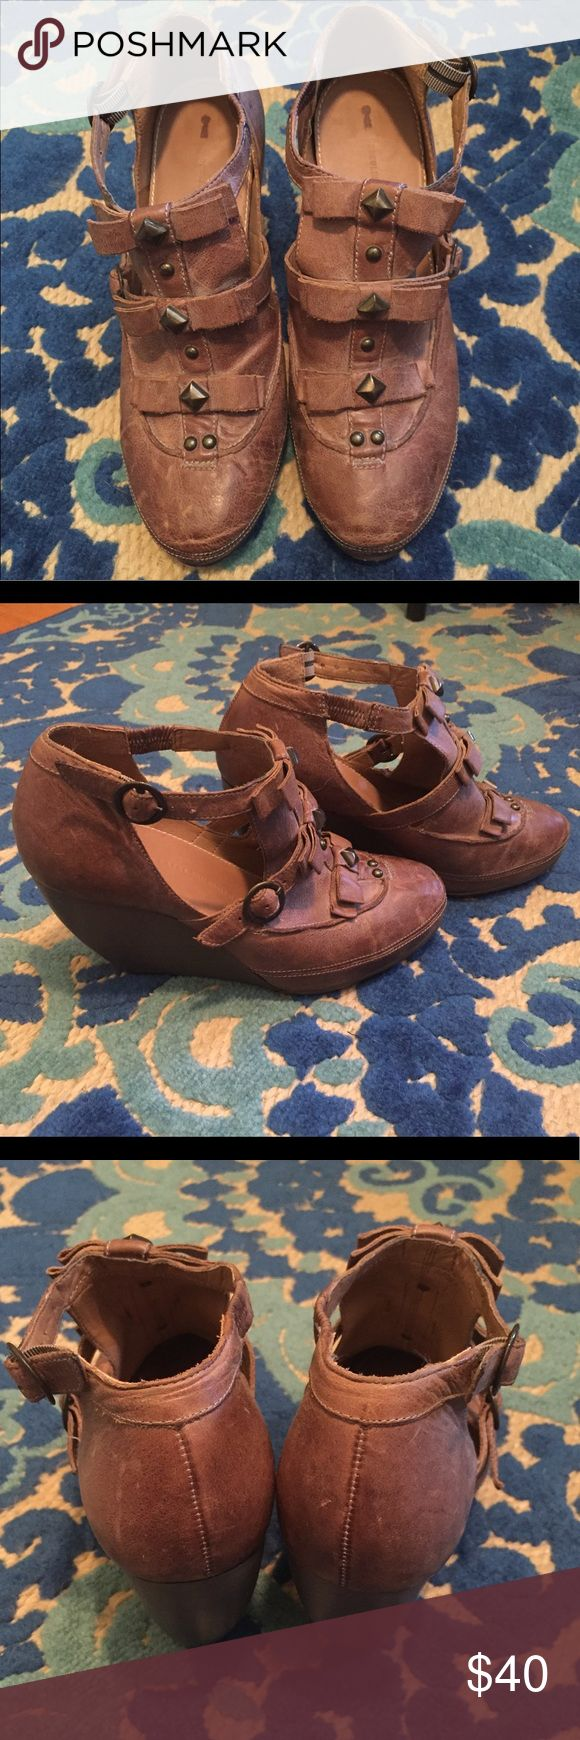 Boho brown distressed leather wedges! Beautiful brown leather wedges with strap and stud details. I'm not 100% sure that they're real leather but they feel and look like it. Distressed look, totally boho. Worn but in VGUC! Schumer & Sons Philadelphia Shoes